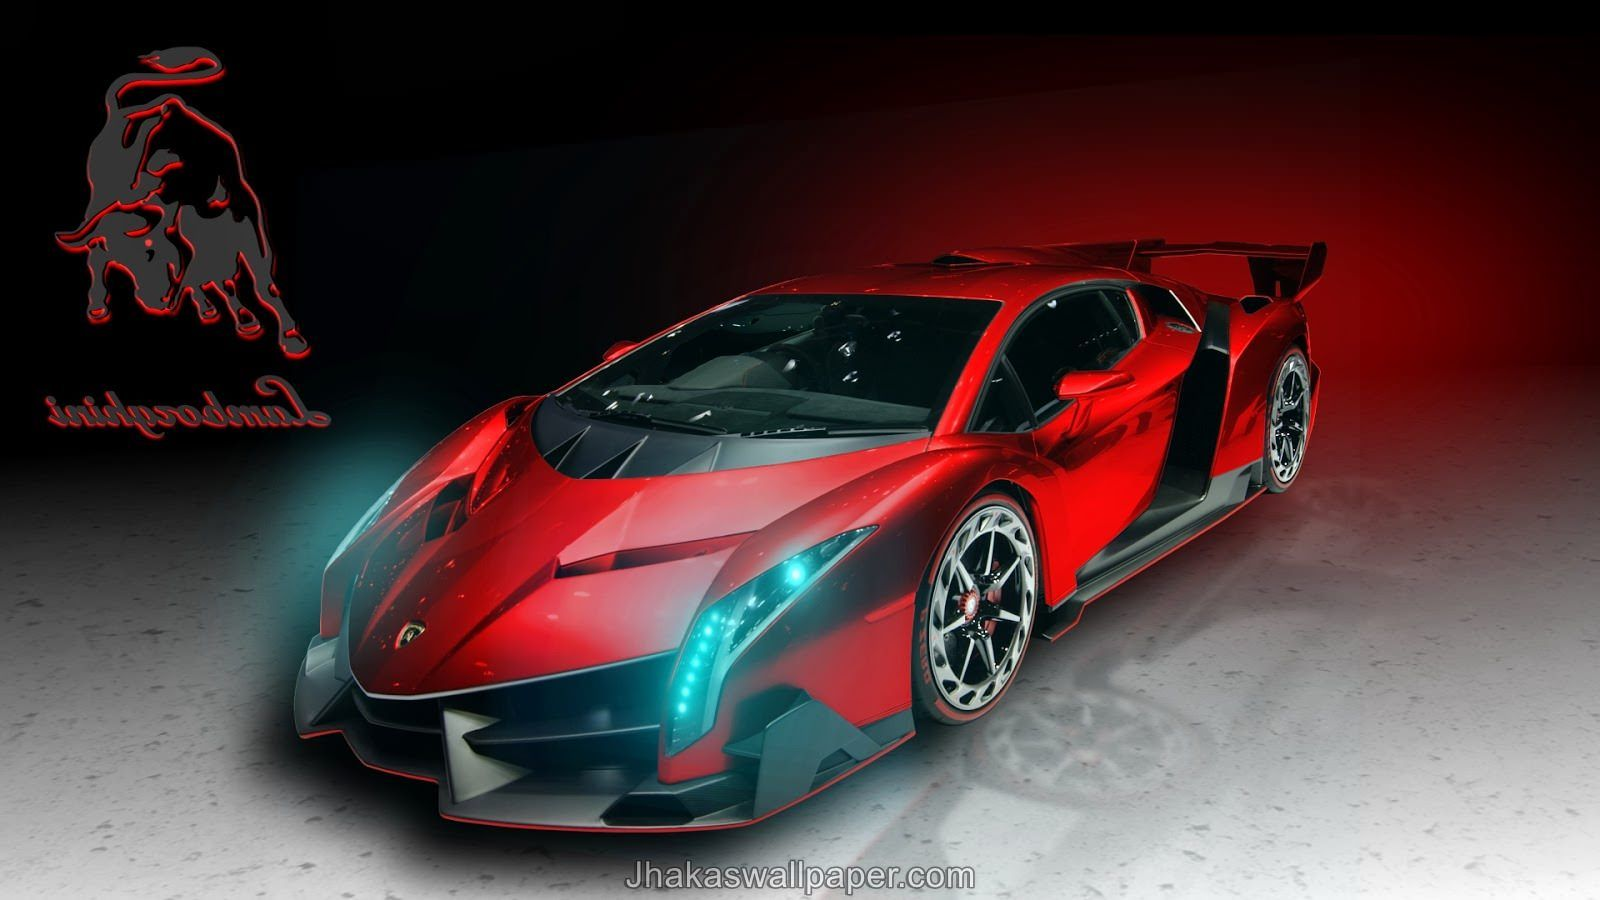 Red Lambo Wallpapers Top Free Red Lambo Backgrounds Wallpaperaccess